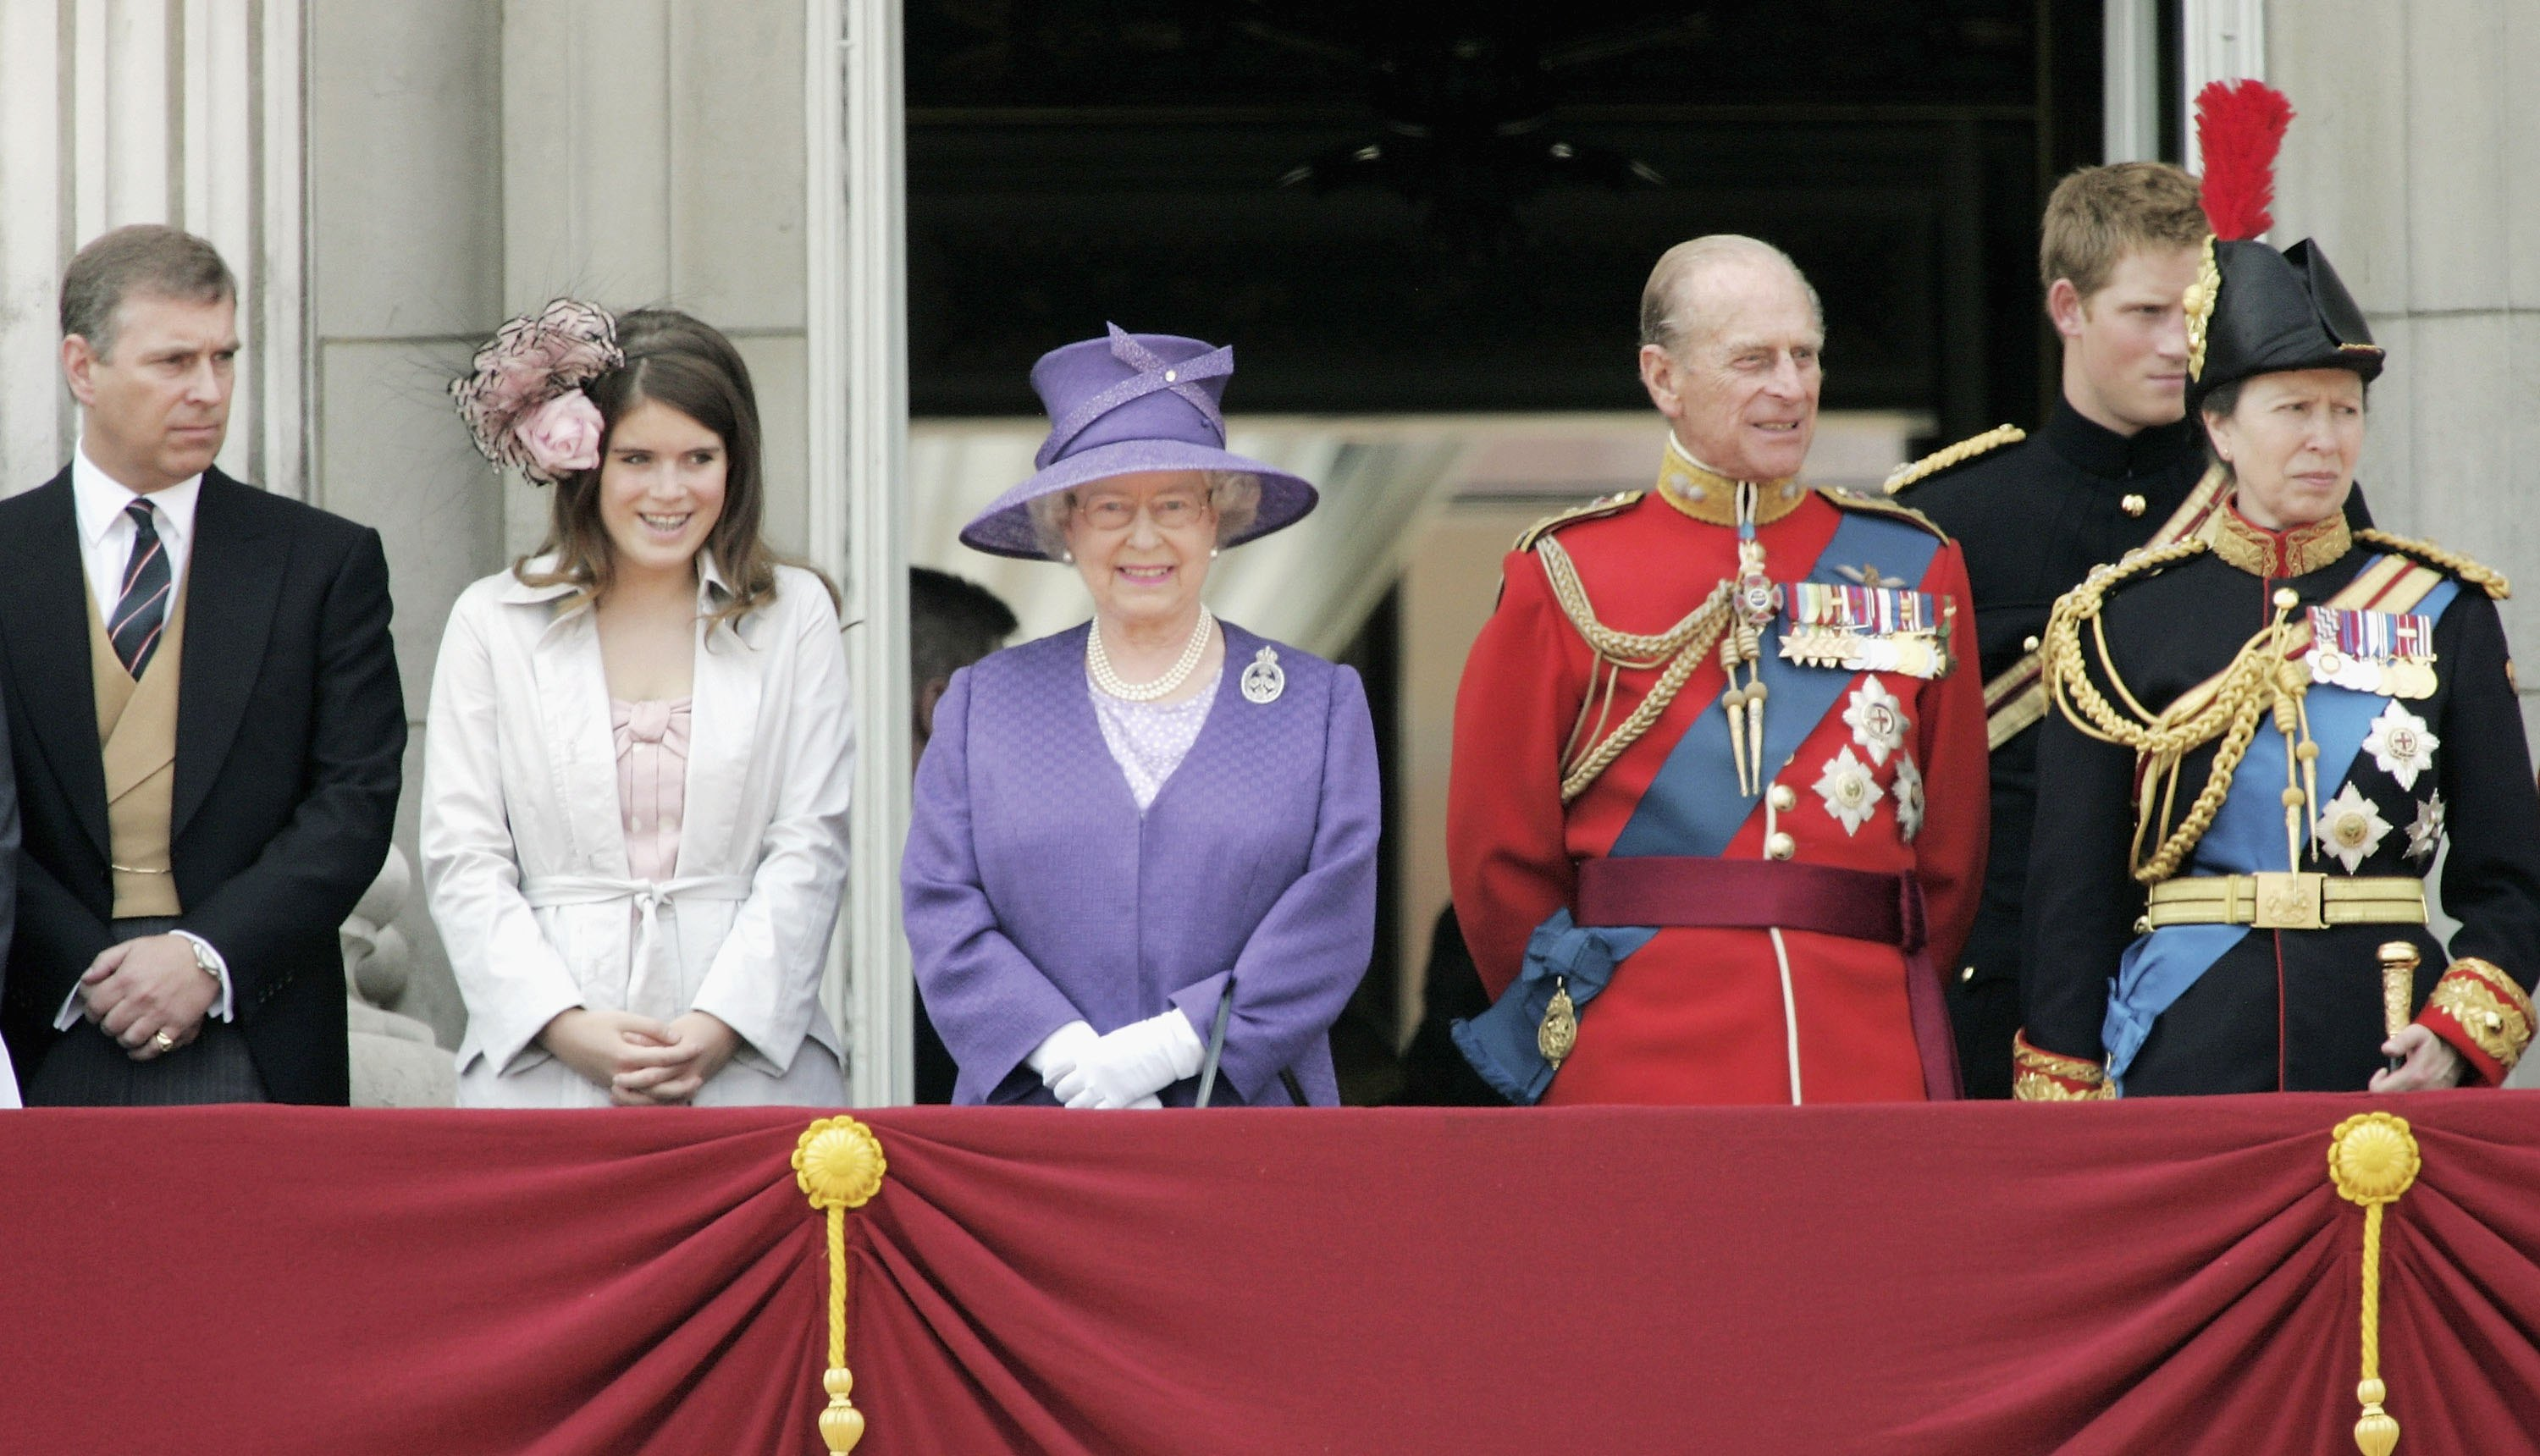 (L-R) Prince Andrew, Duke of York, Princess Eugenie, Queen Elizabeth II, Prince Philip, Duke of Edinburgh, Prince Harry and Princess Anne, Princess Royal stand on the balcony of Buckingham Palace following Trooping of The Queen's Colour of First Battalion Grenadier Guards, marking The Queen's official birthday, at Horse Guards Parade on June 17, 2006 in London, England.